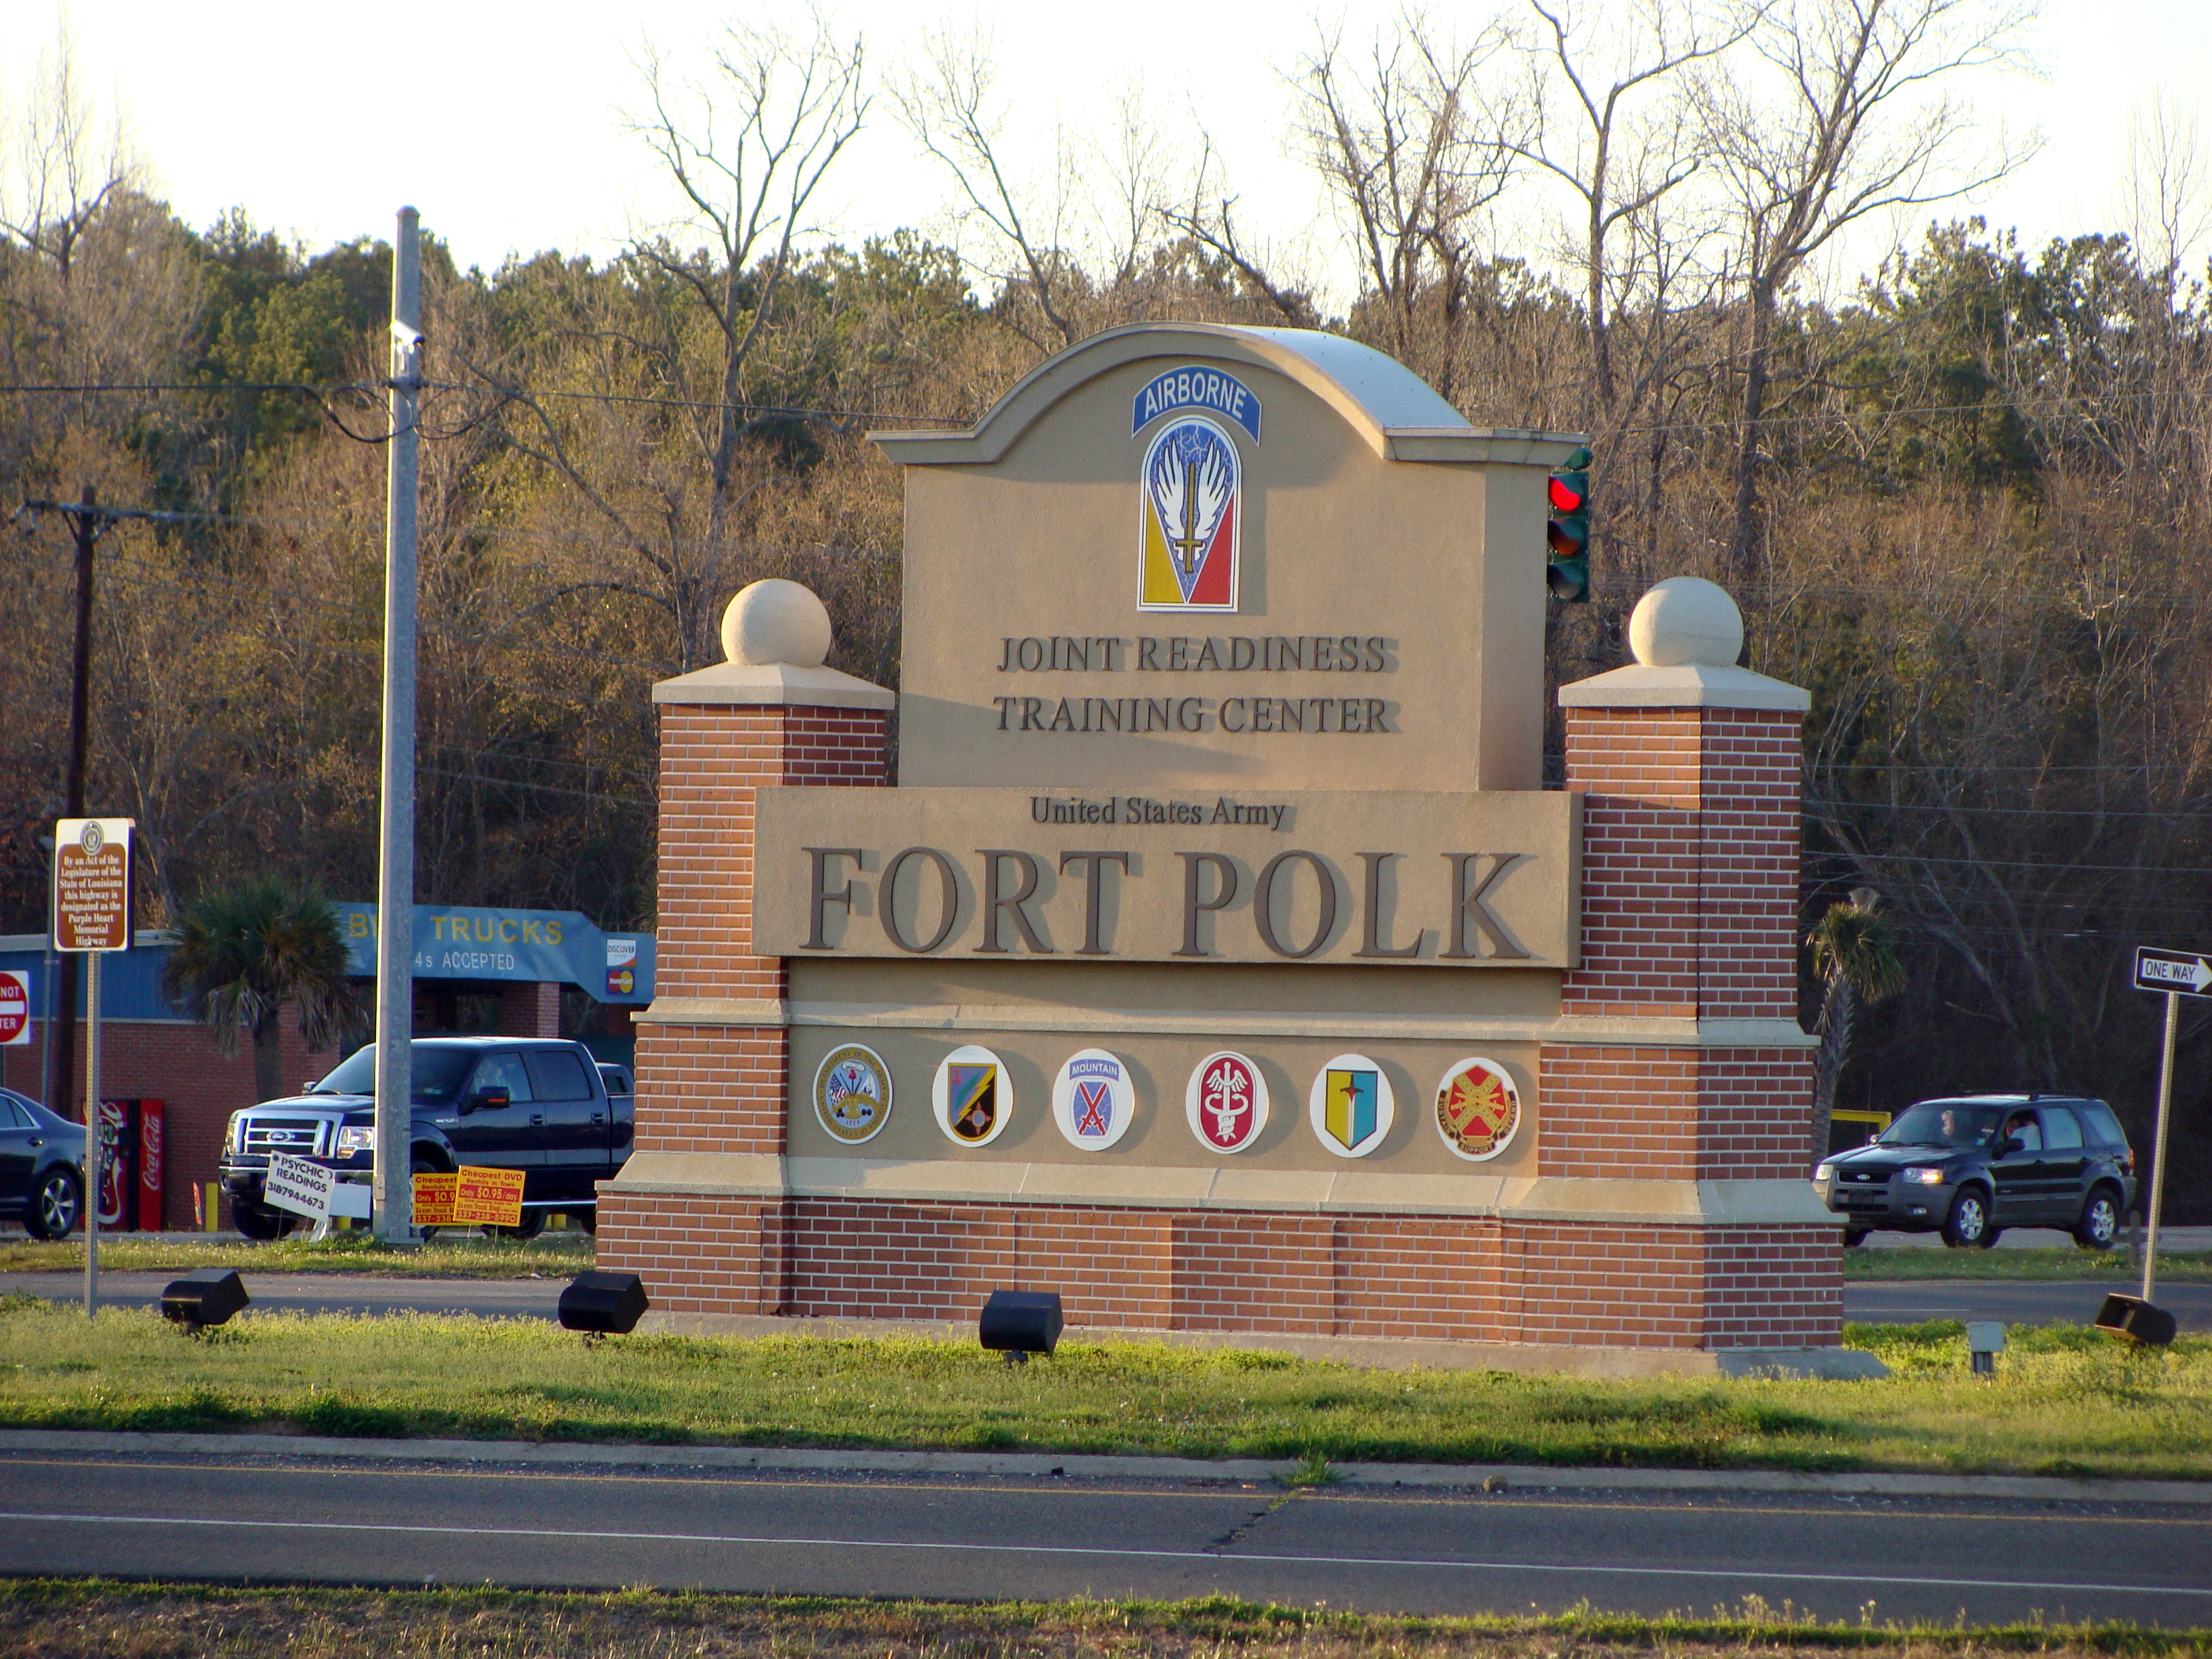 Built in the 1940s, the post is named after Episcopal bishop and Confederate general Leonidas Polk. (Photo by Lolita Baldor/Associated Press